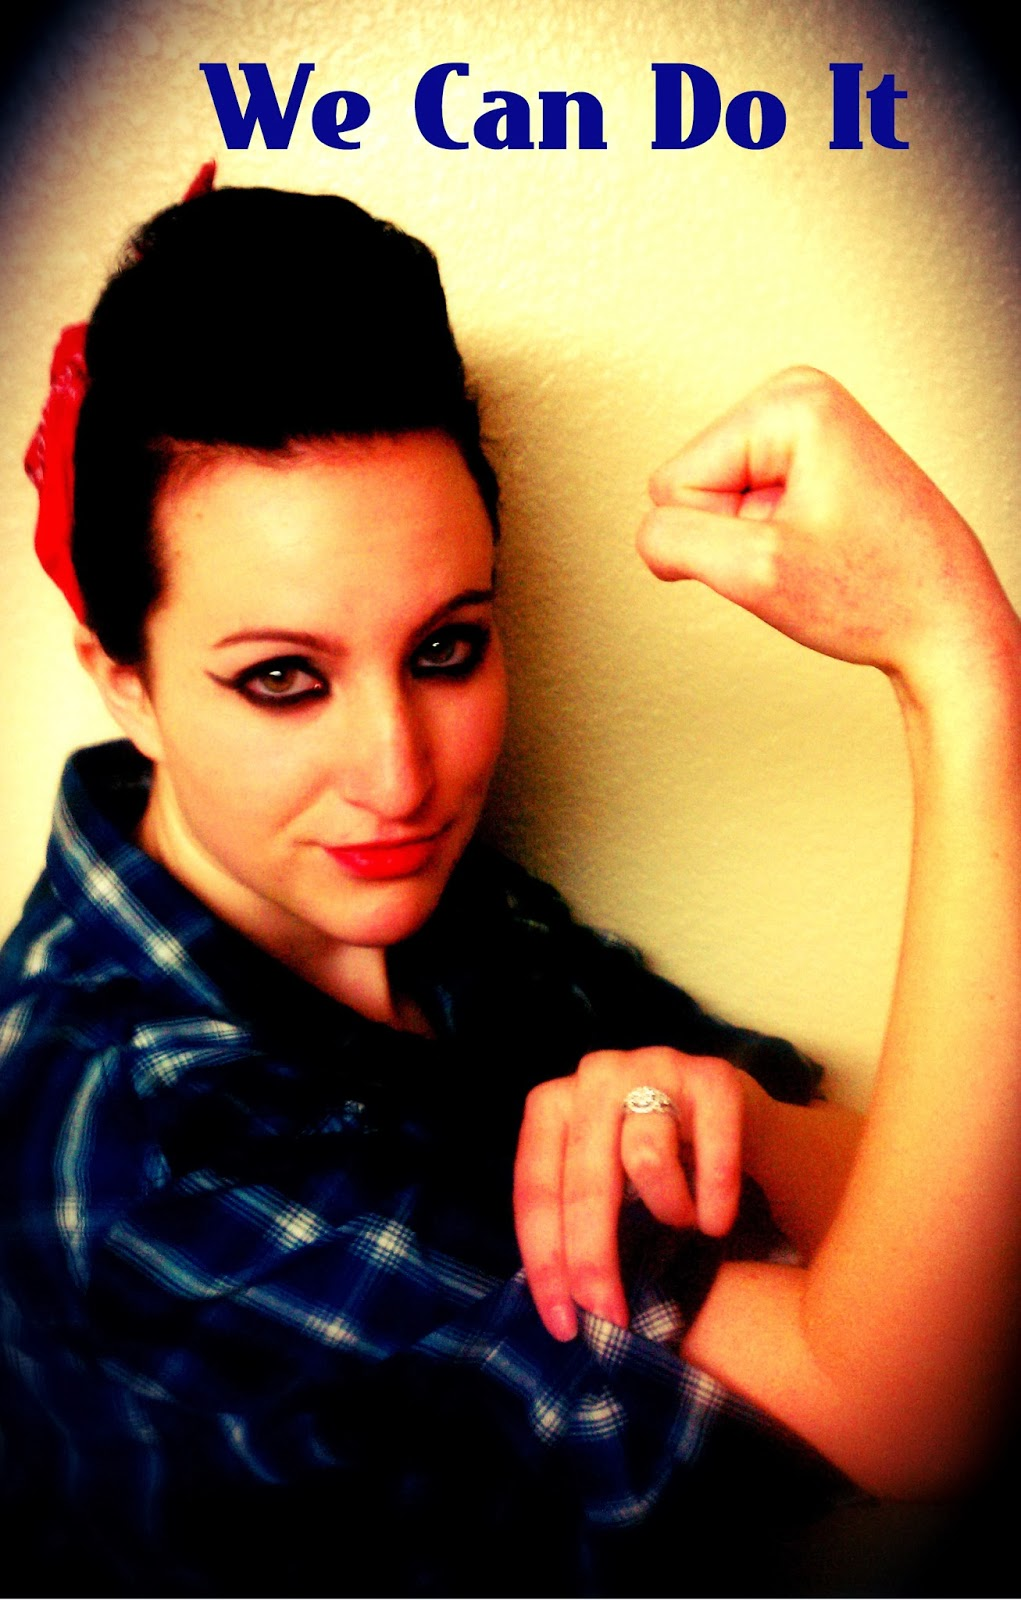 semi mohawk hairstyle : Polychrome: Rosie the Riveter Hairstyle